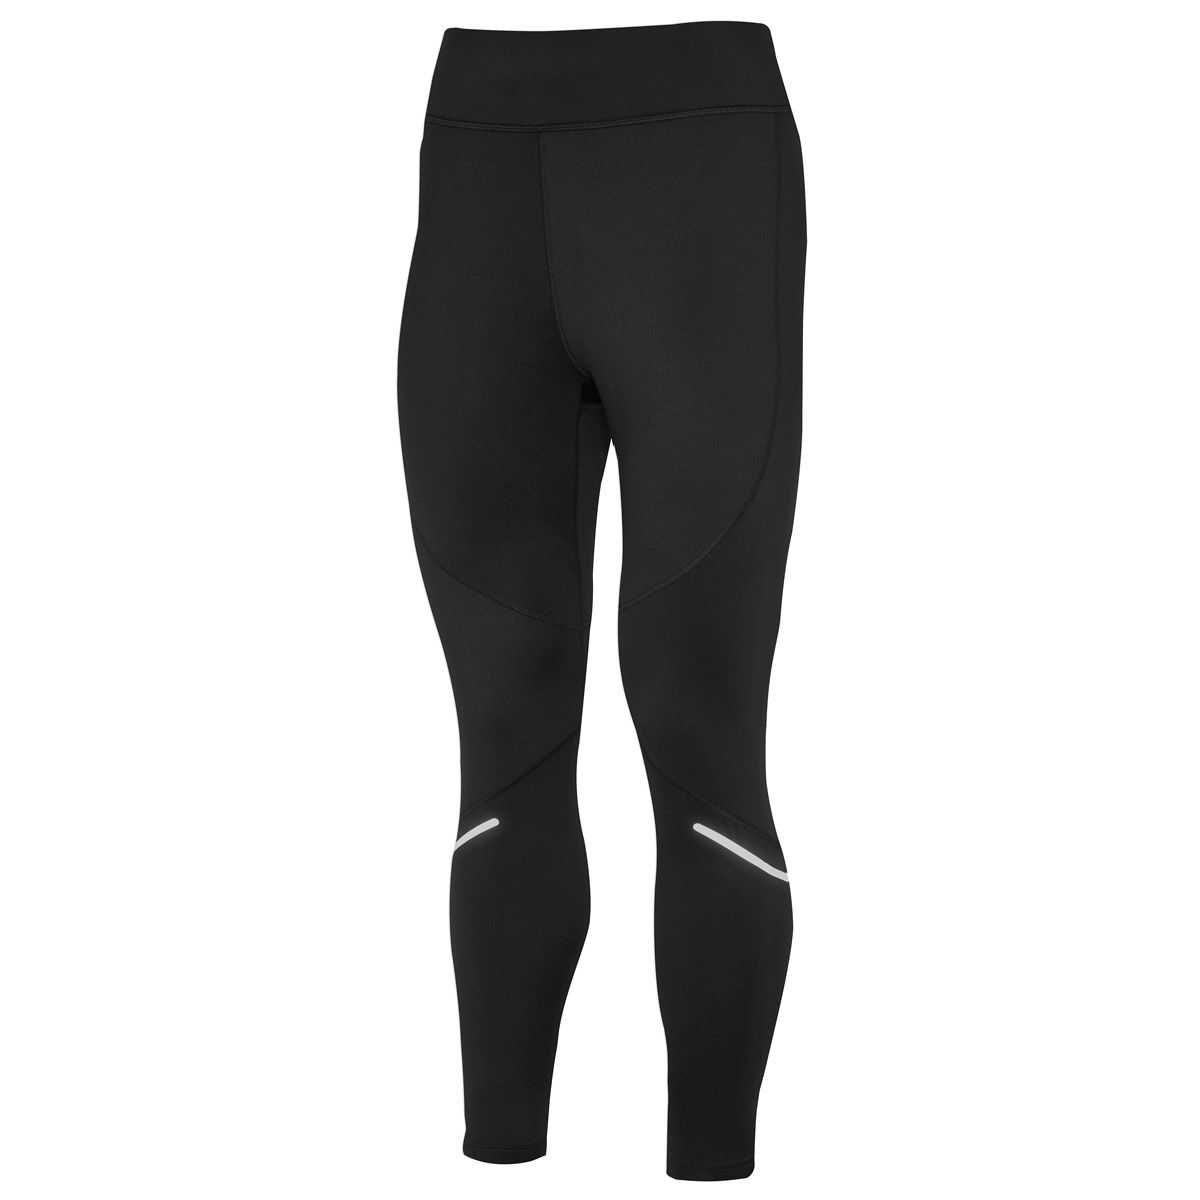 Moret Ultra Womens Warm Systems Legging